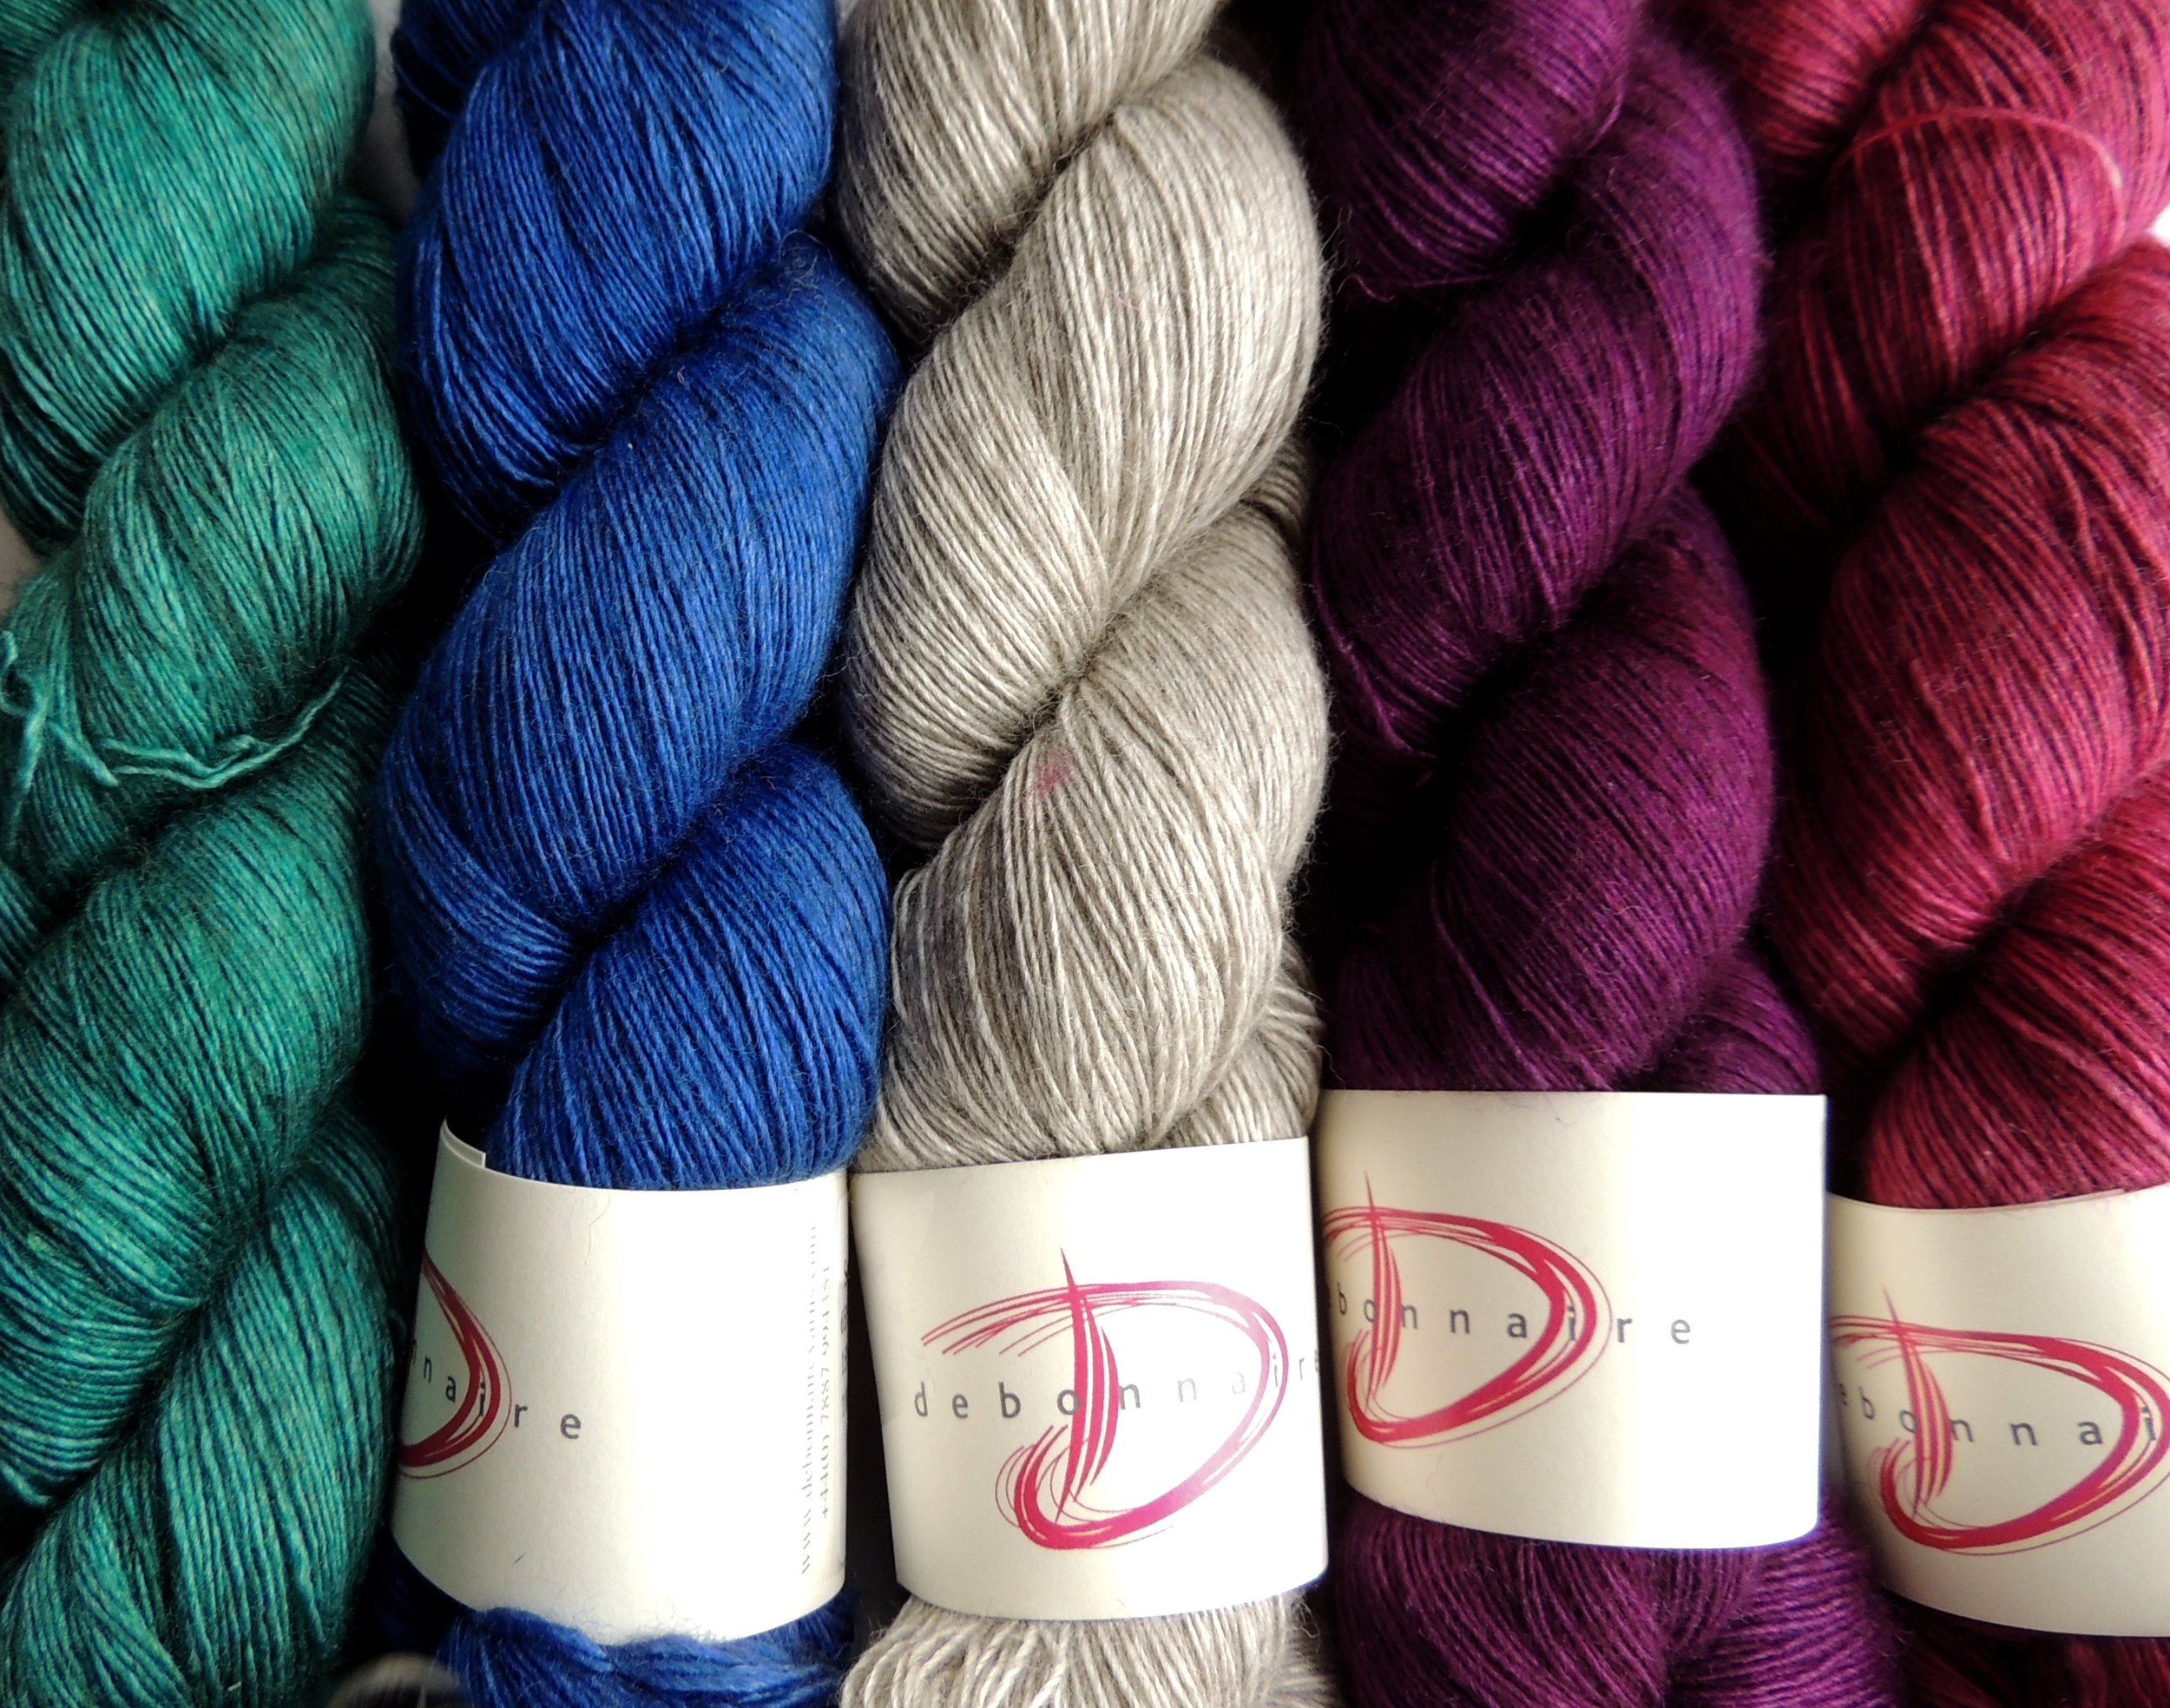 Squeal Lace Yarn- Yak, Silk and Merino singles